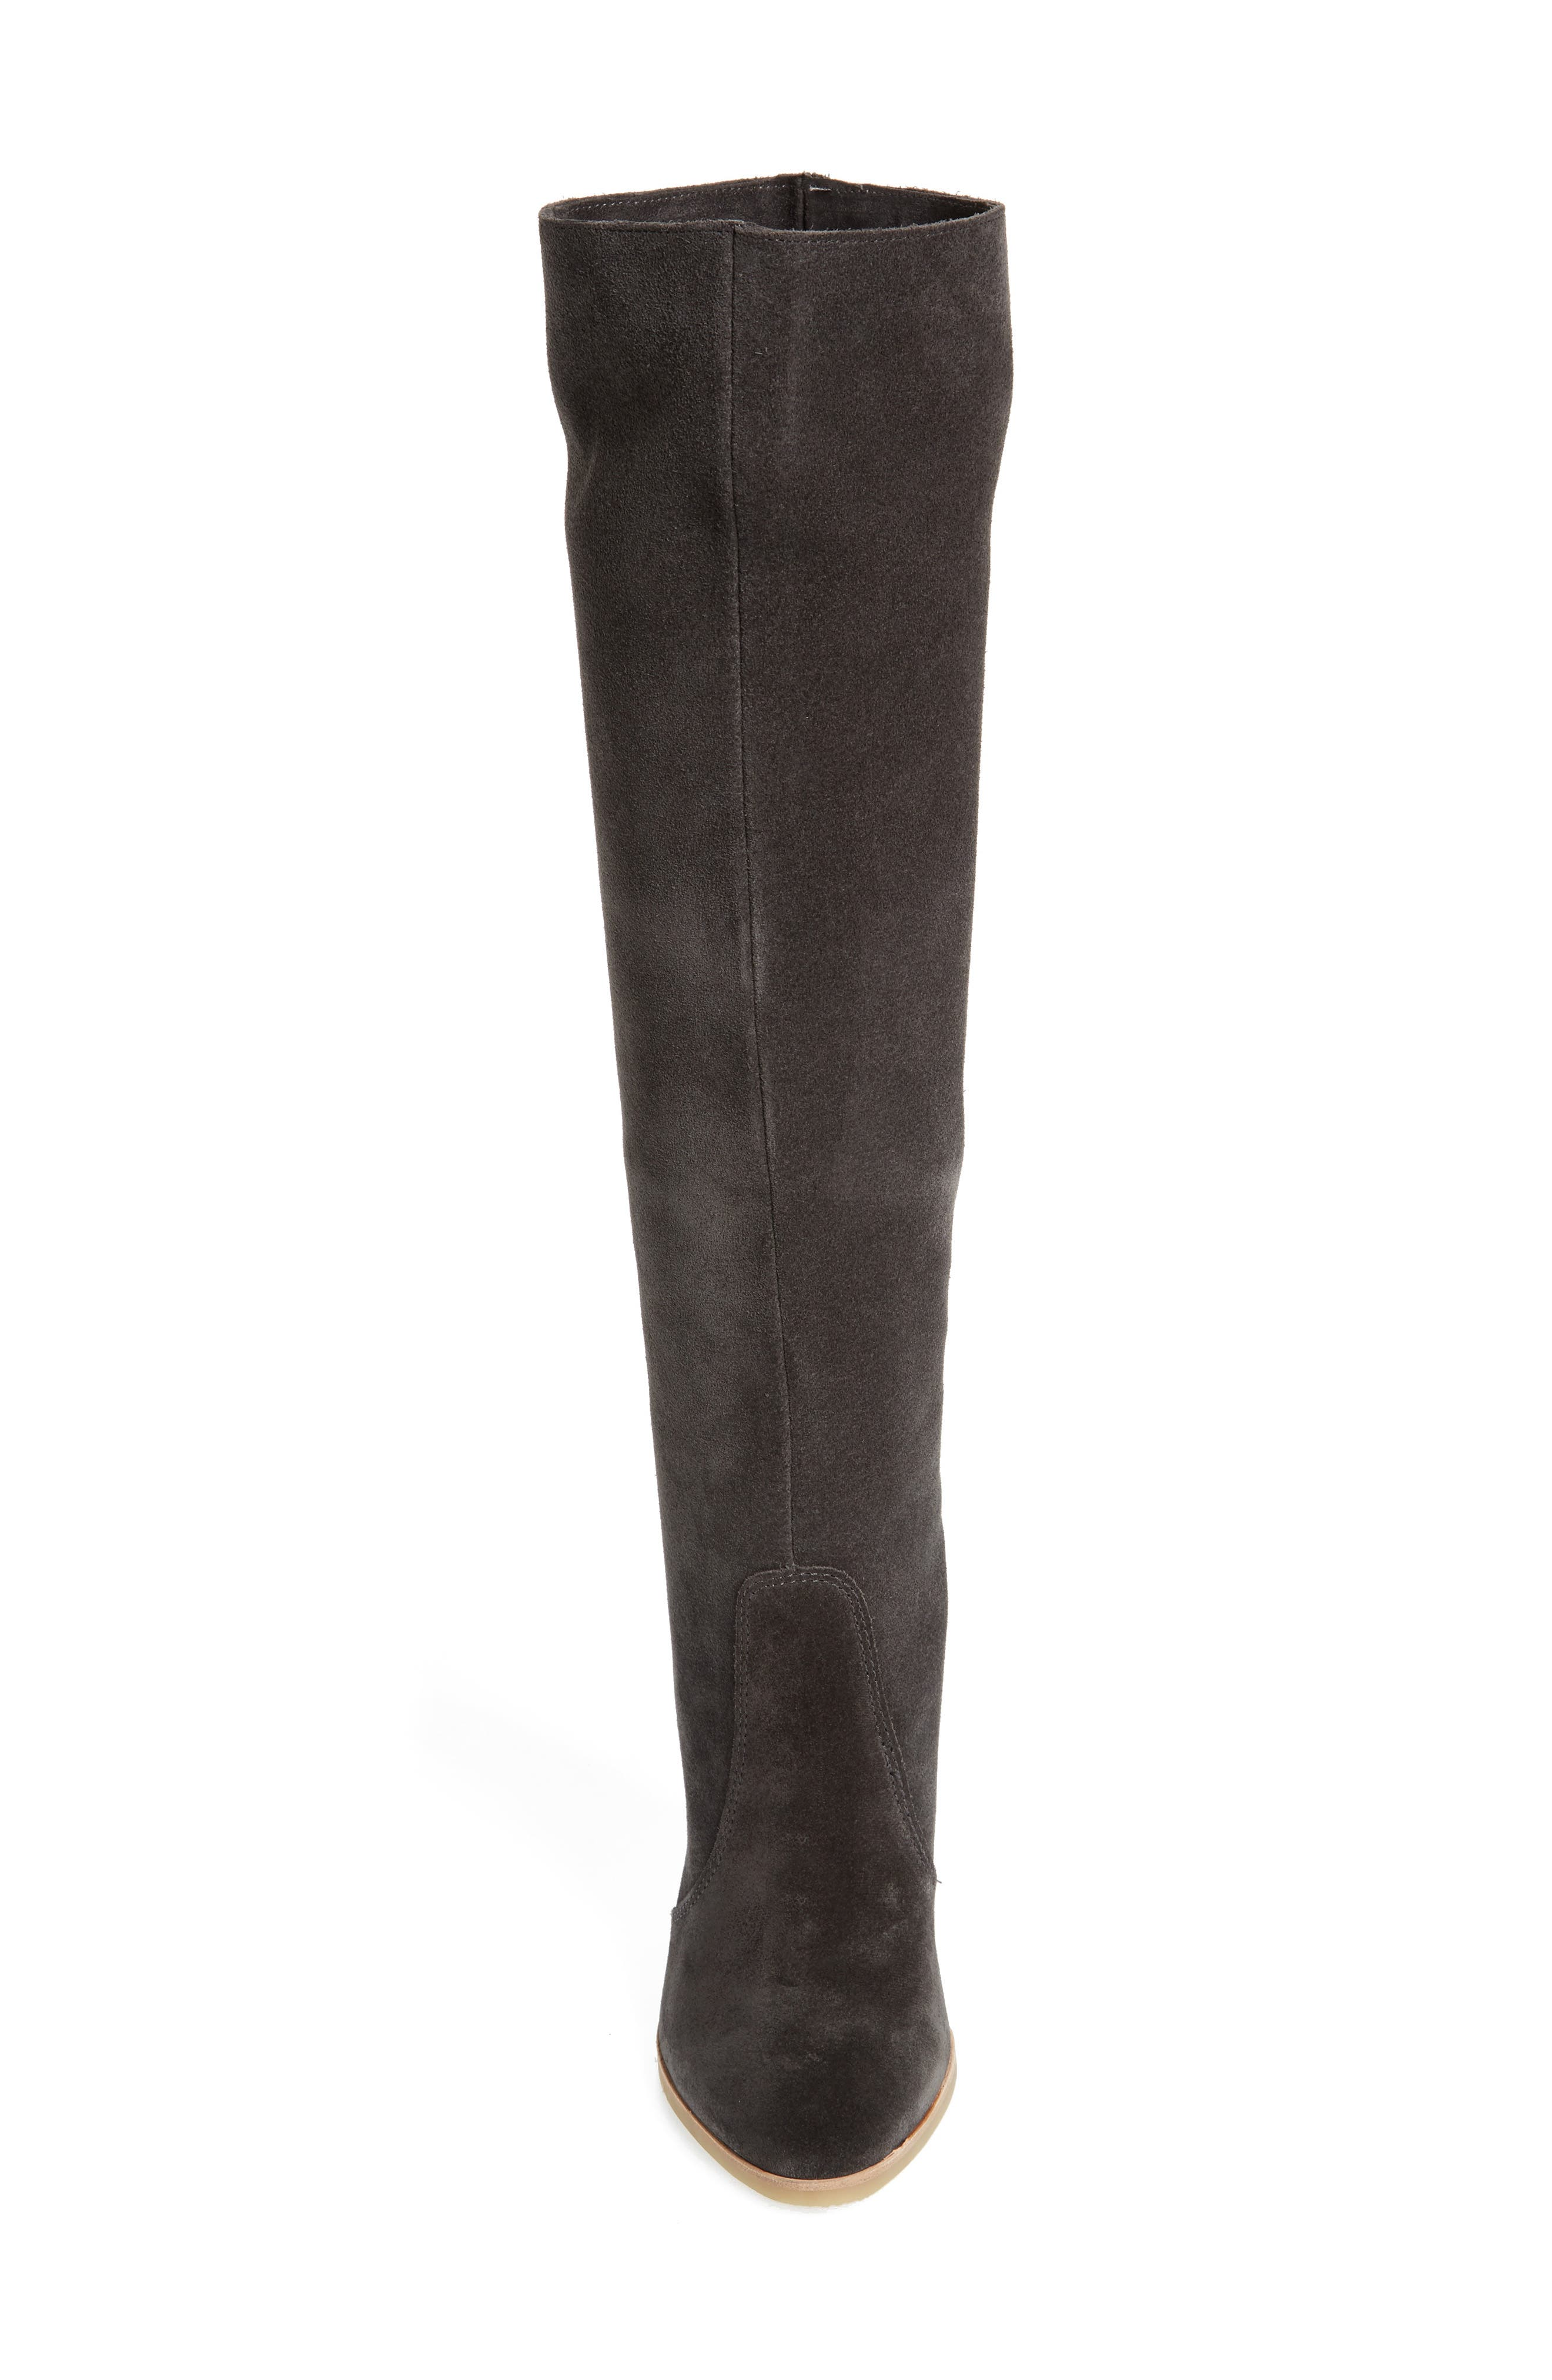 Celine Knee-High Boot,                             Alternate thumbnail 4, color,                             Anthracite Suede